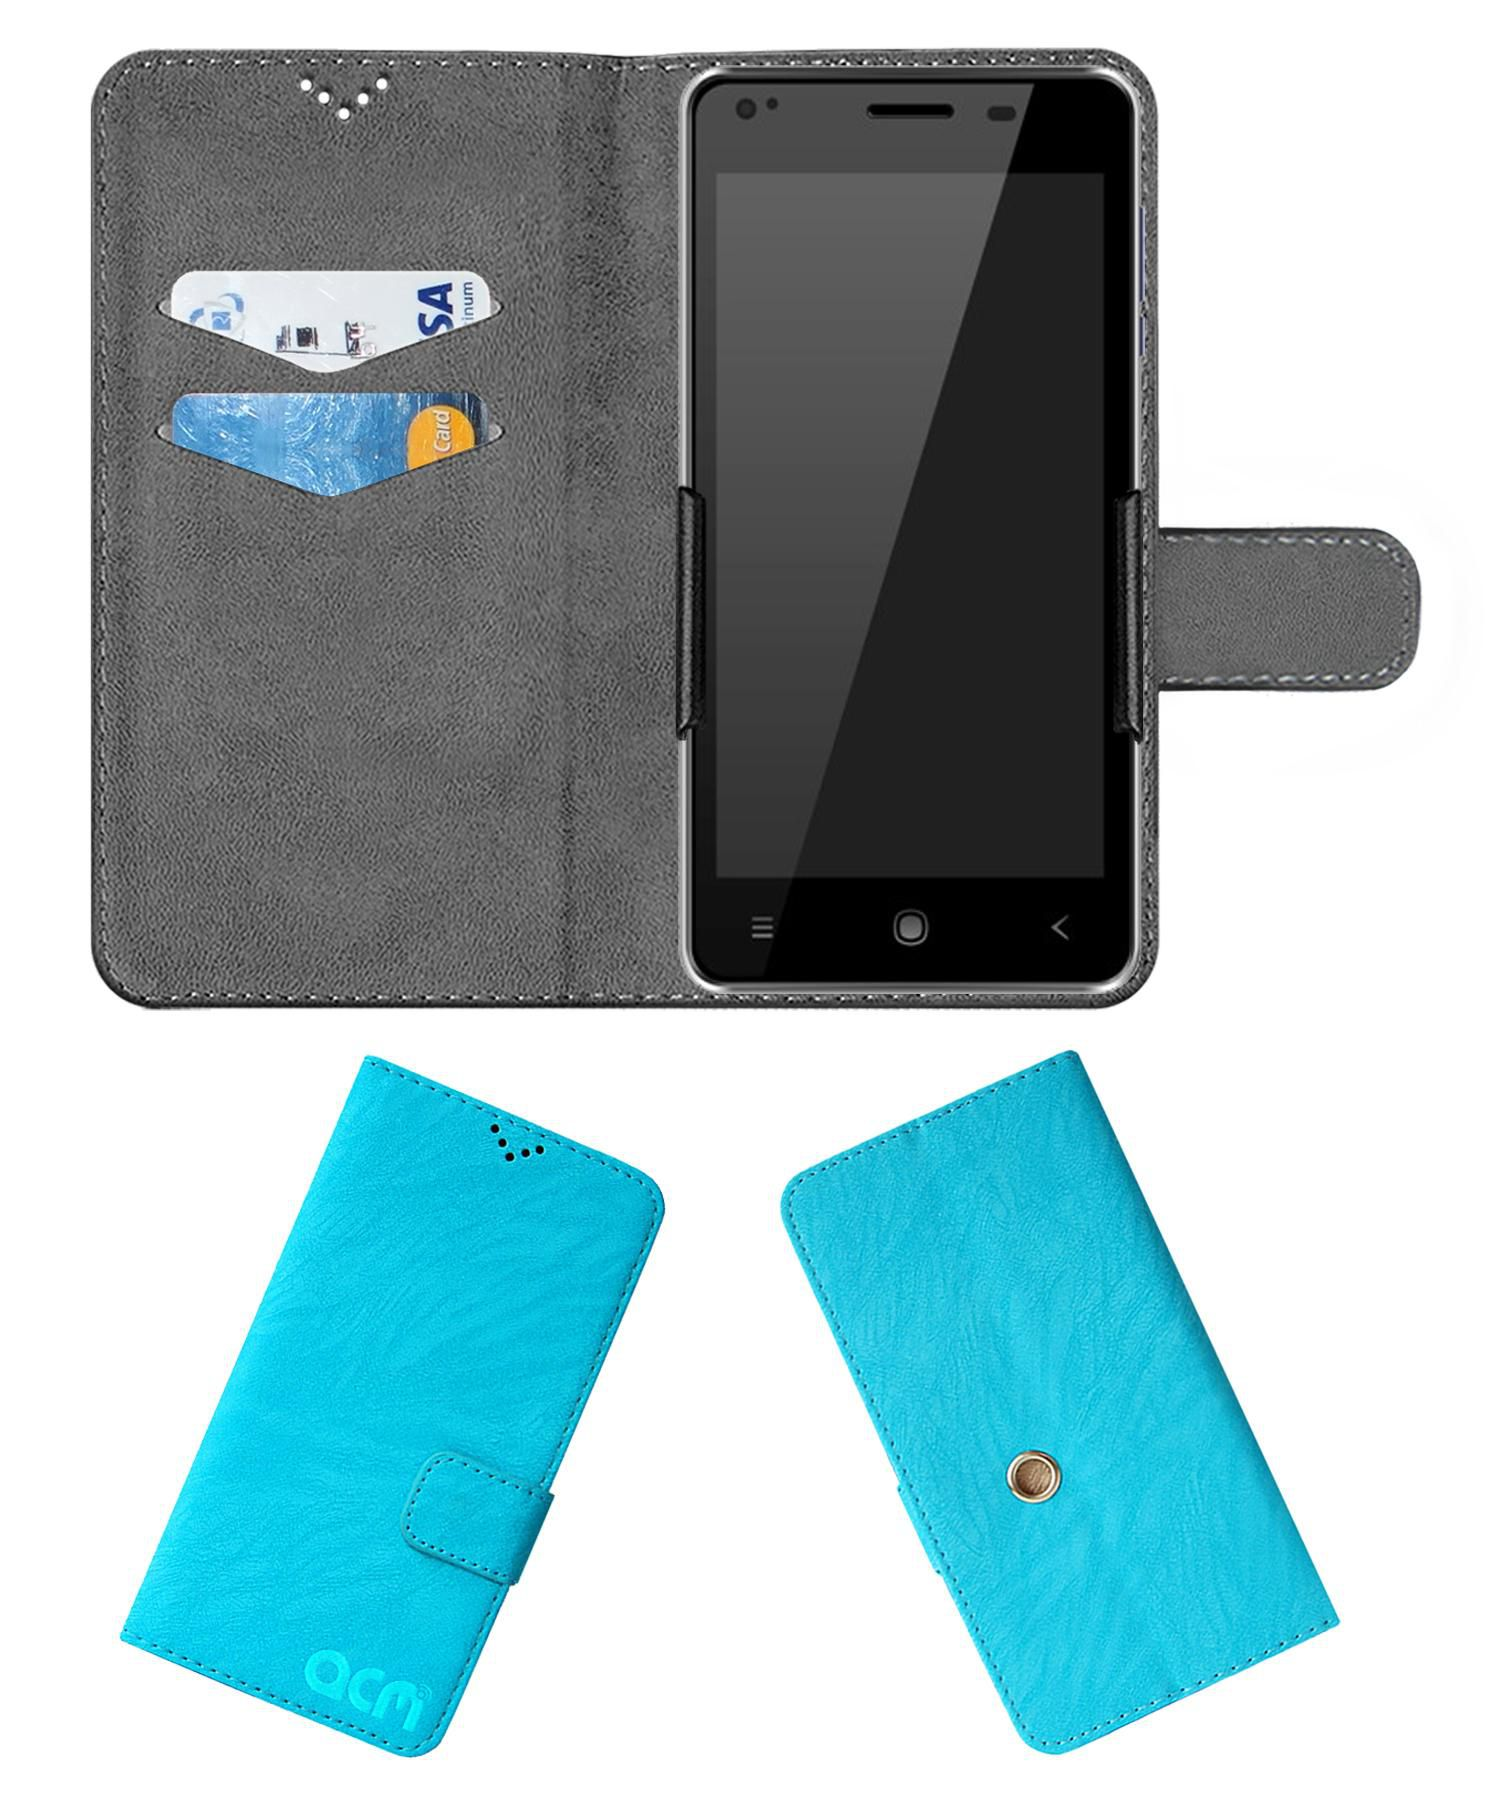 Videocon Infinium Z51 Nova Flip Cover by ACM - Blue Clip holder to hold your mobile securely